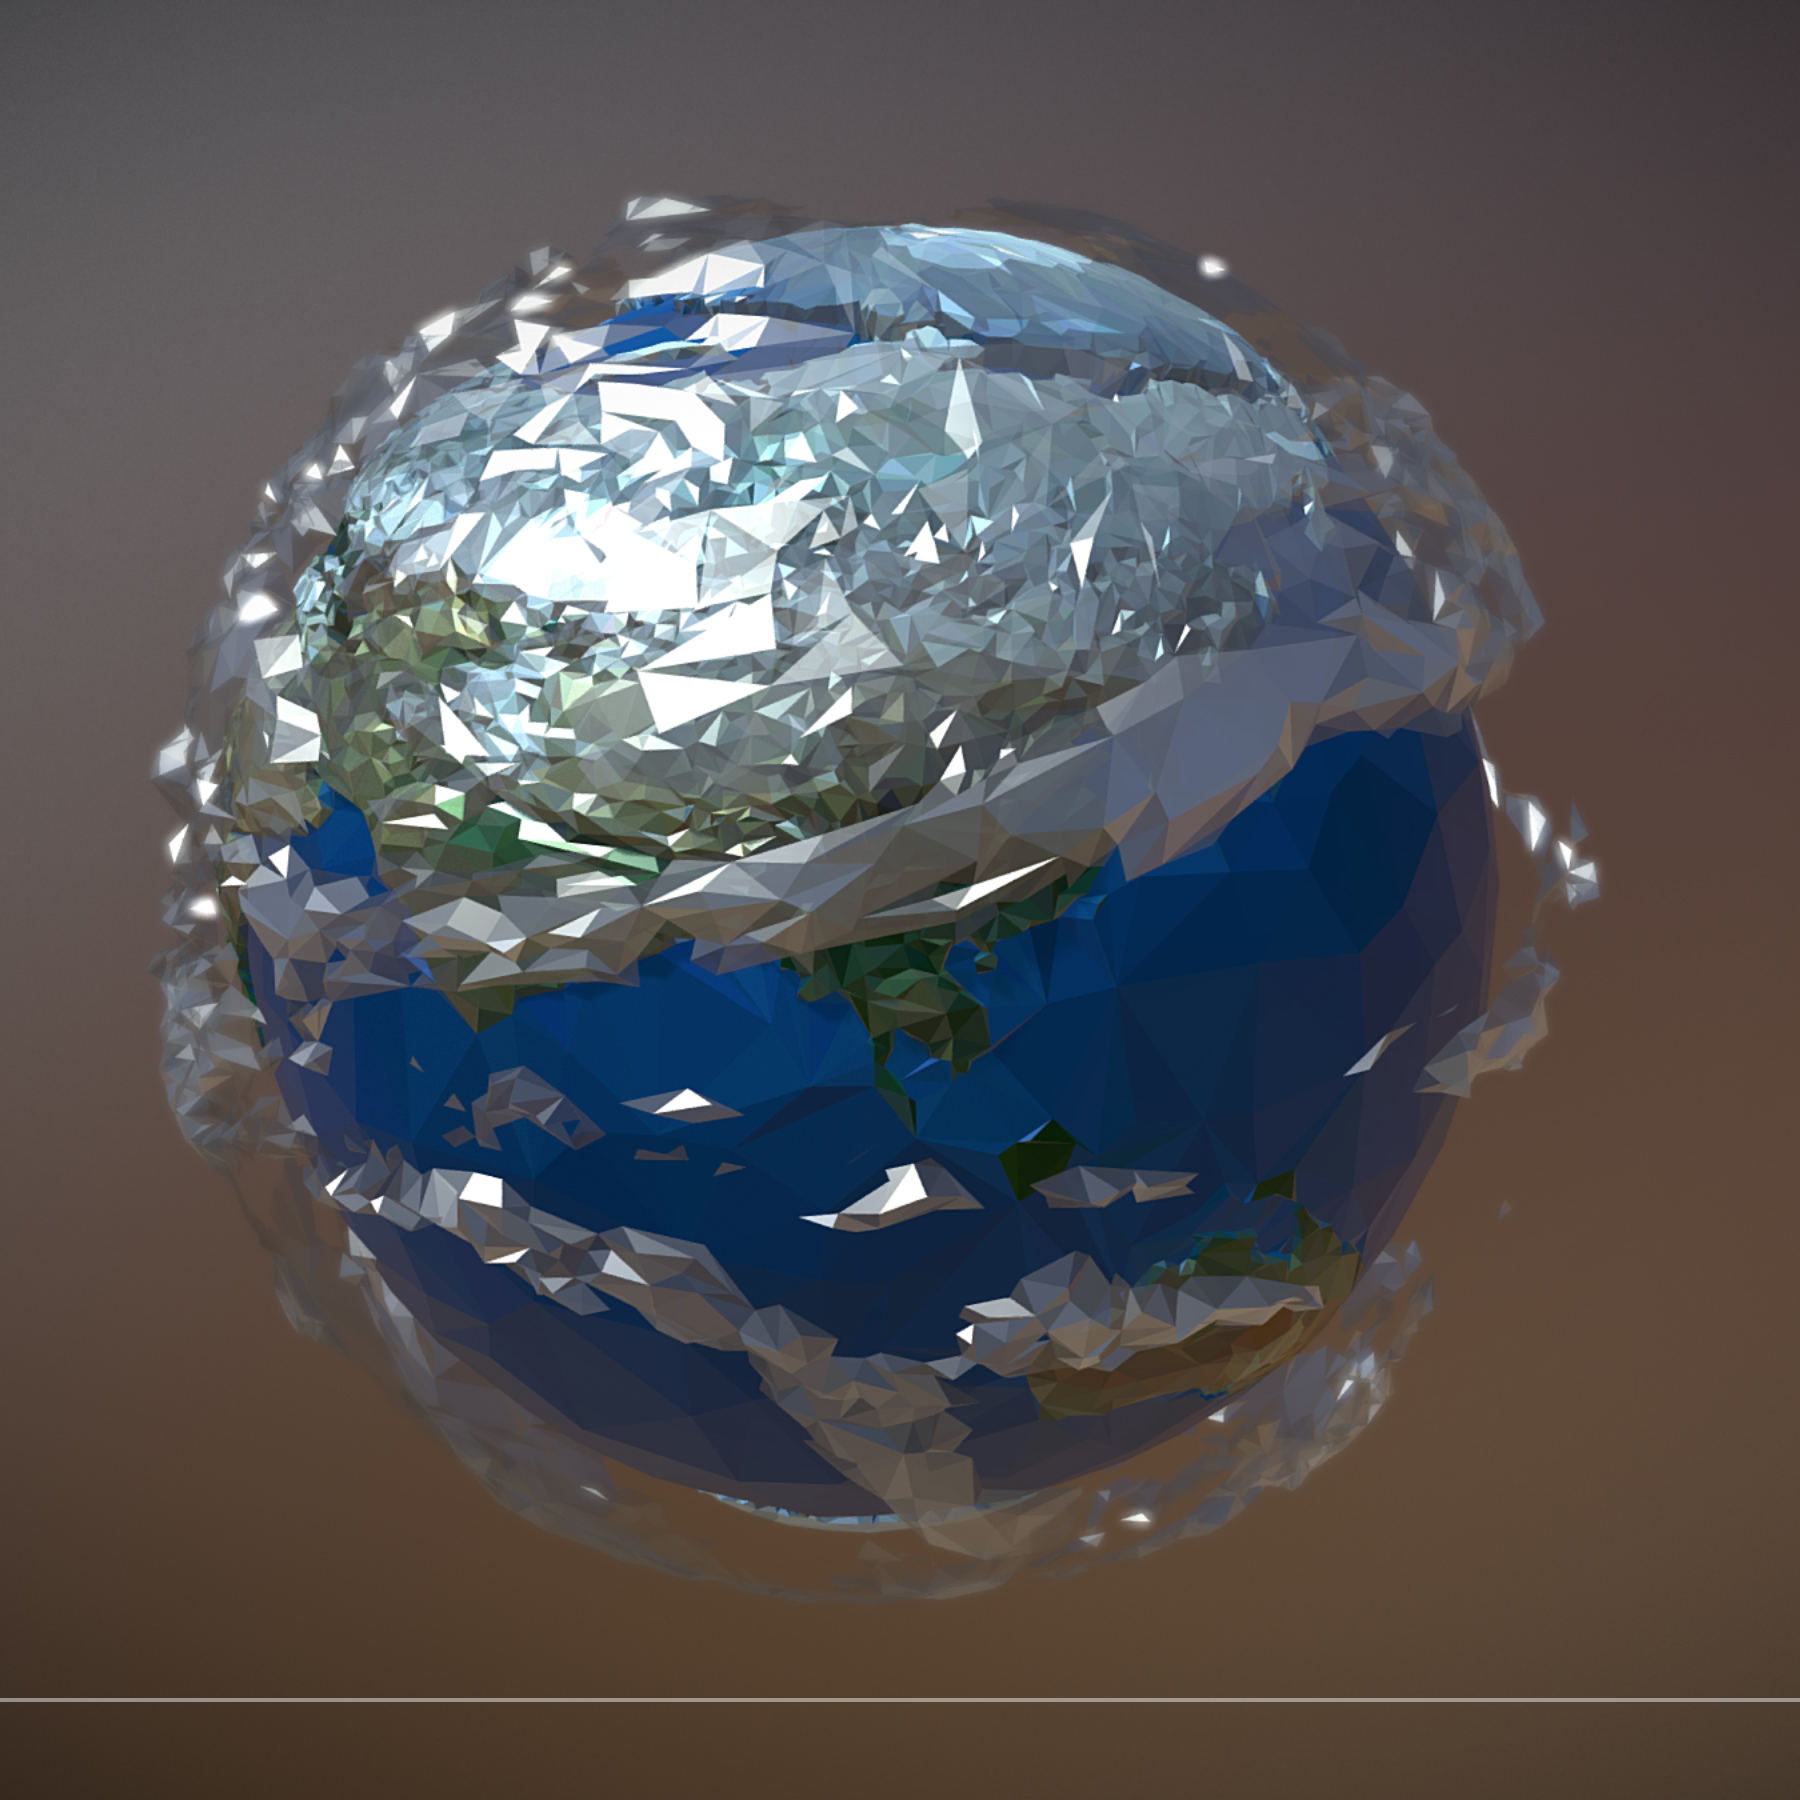 animated planet earth 3d model 3ds max fbx ma mb tga targa icb vda vst pix obj 271045